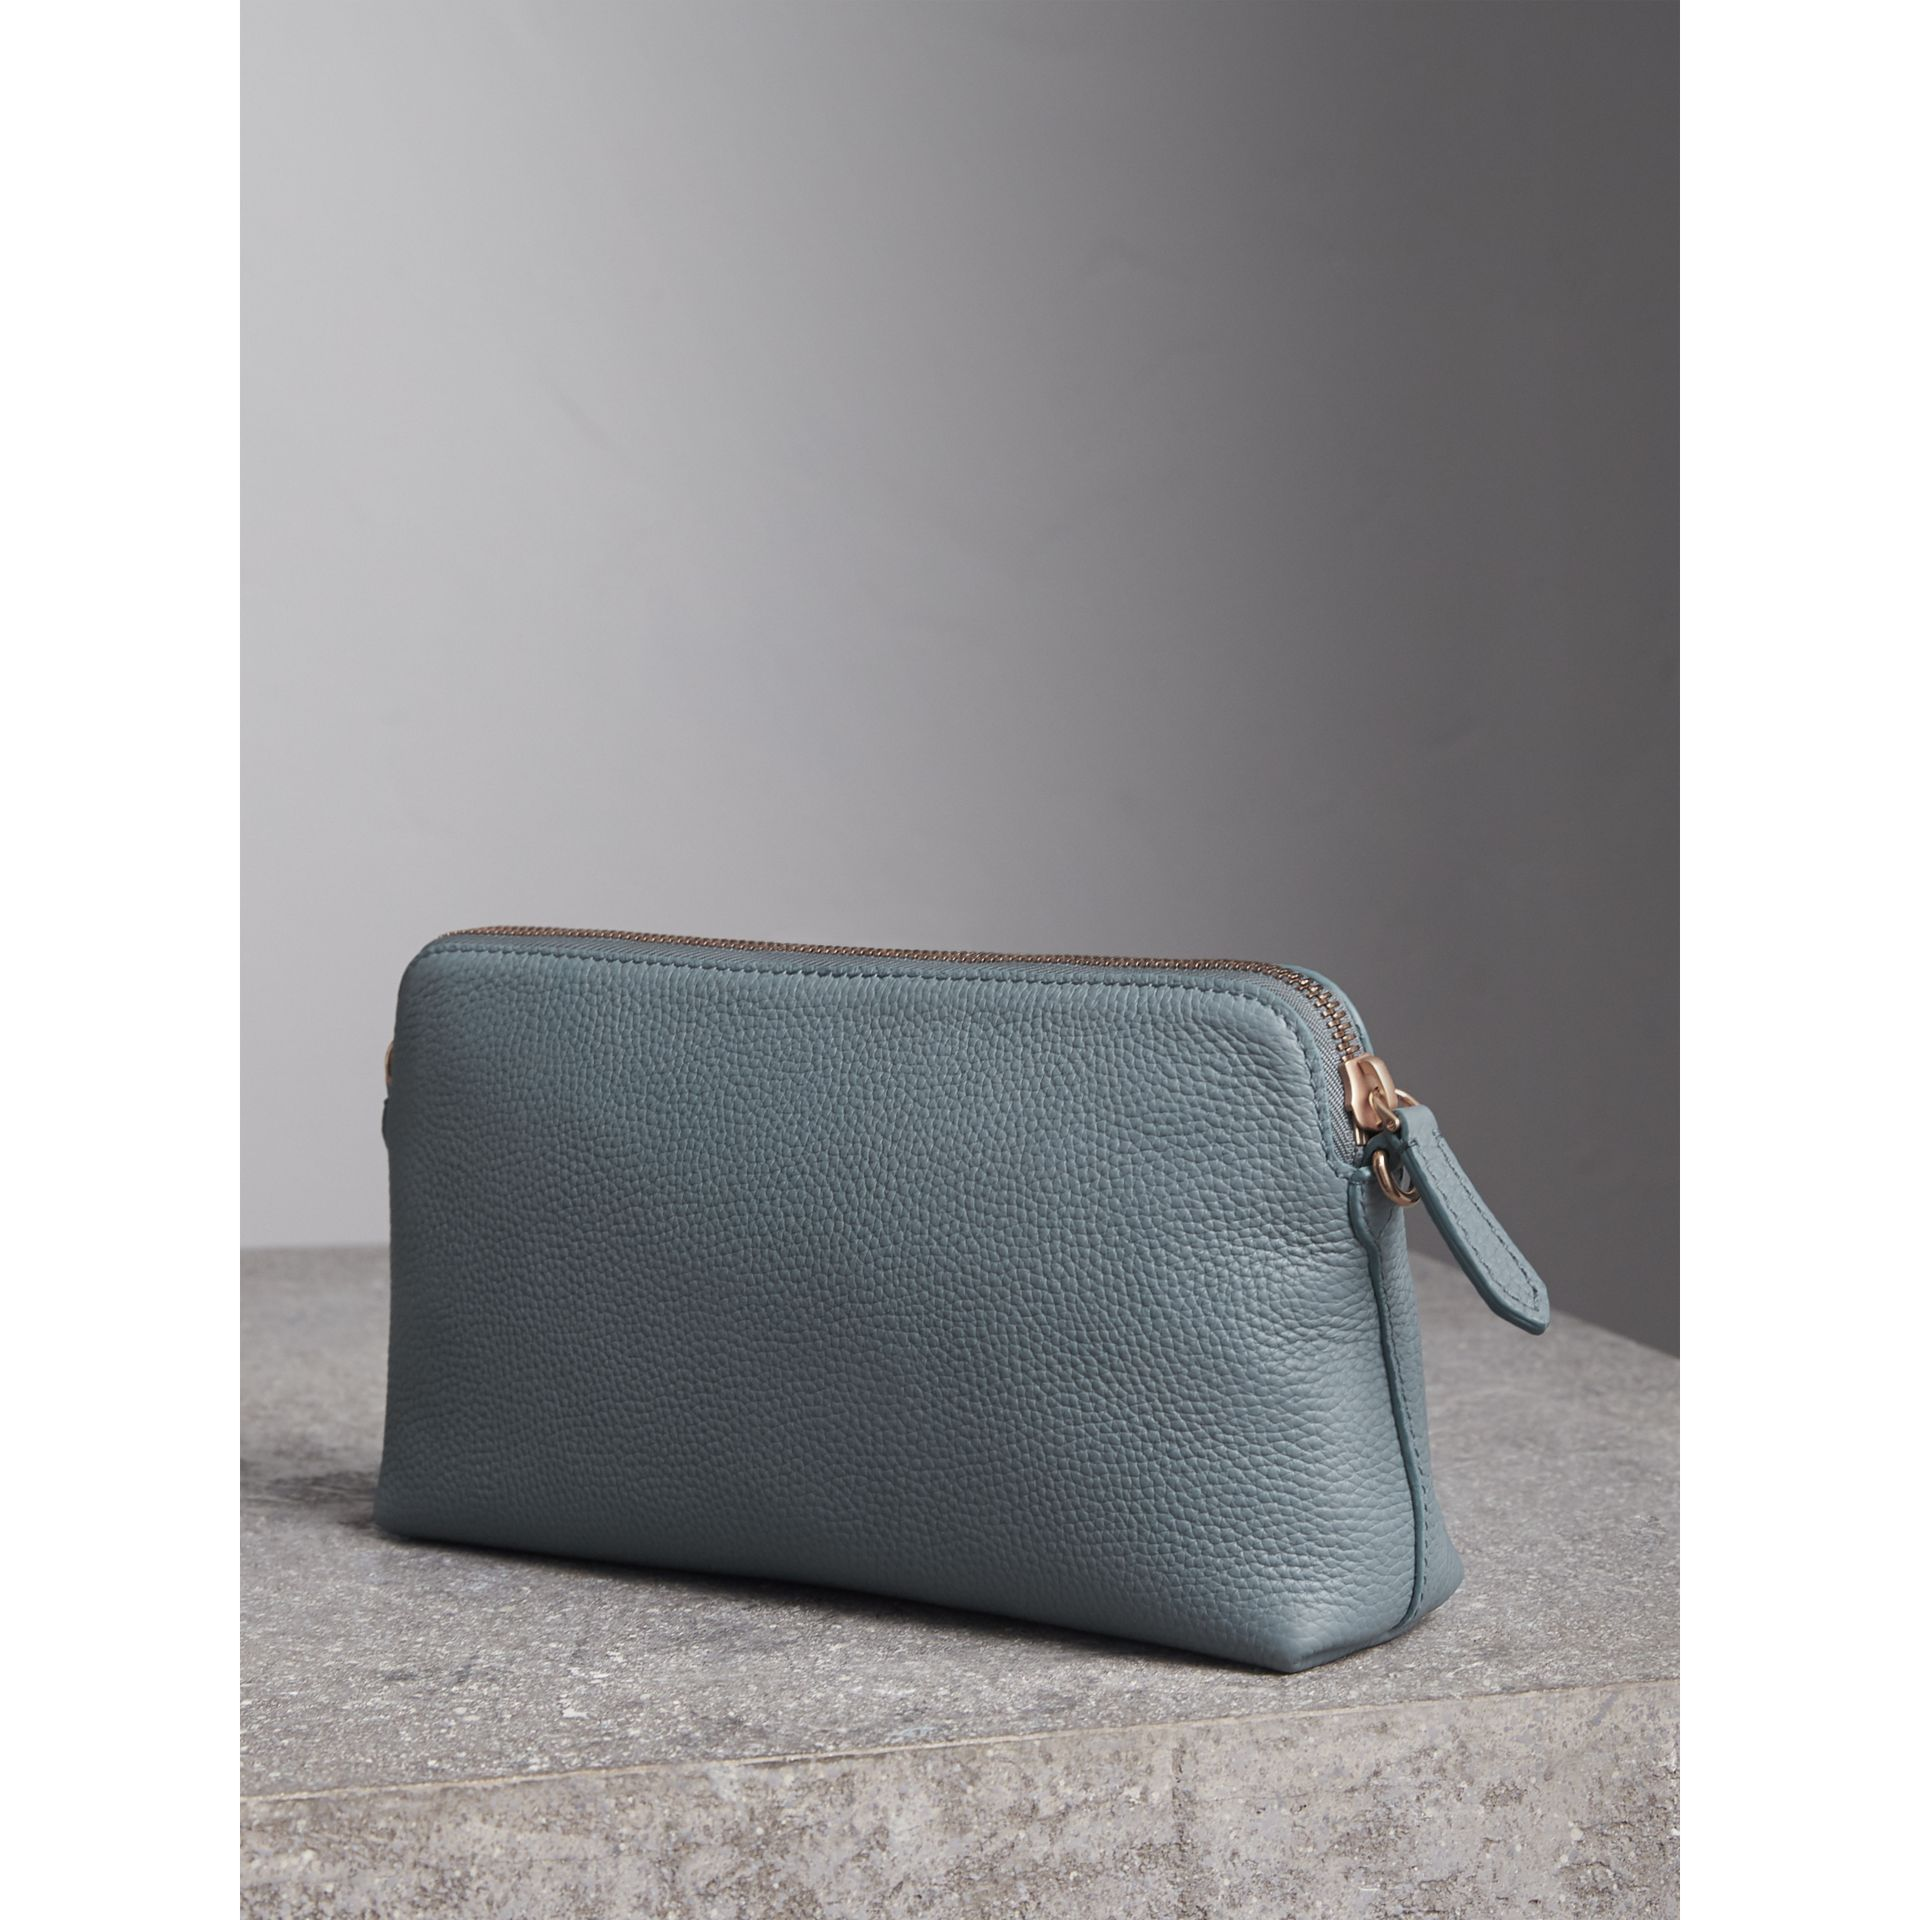 Embossed Leather Clutch Bag in Dusty Teal Blue - Women | Burberry - gallery image 5